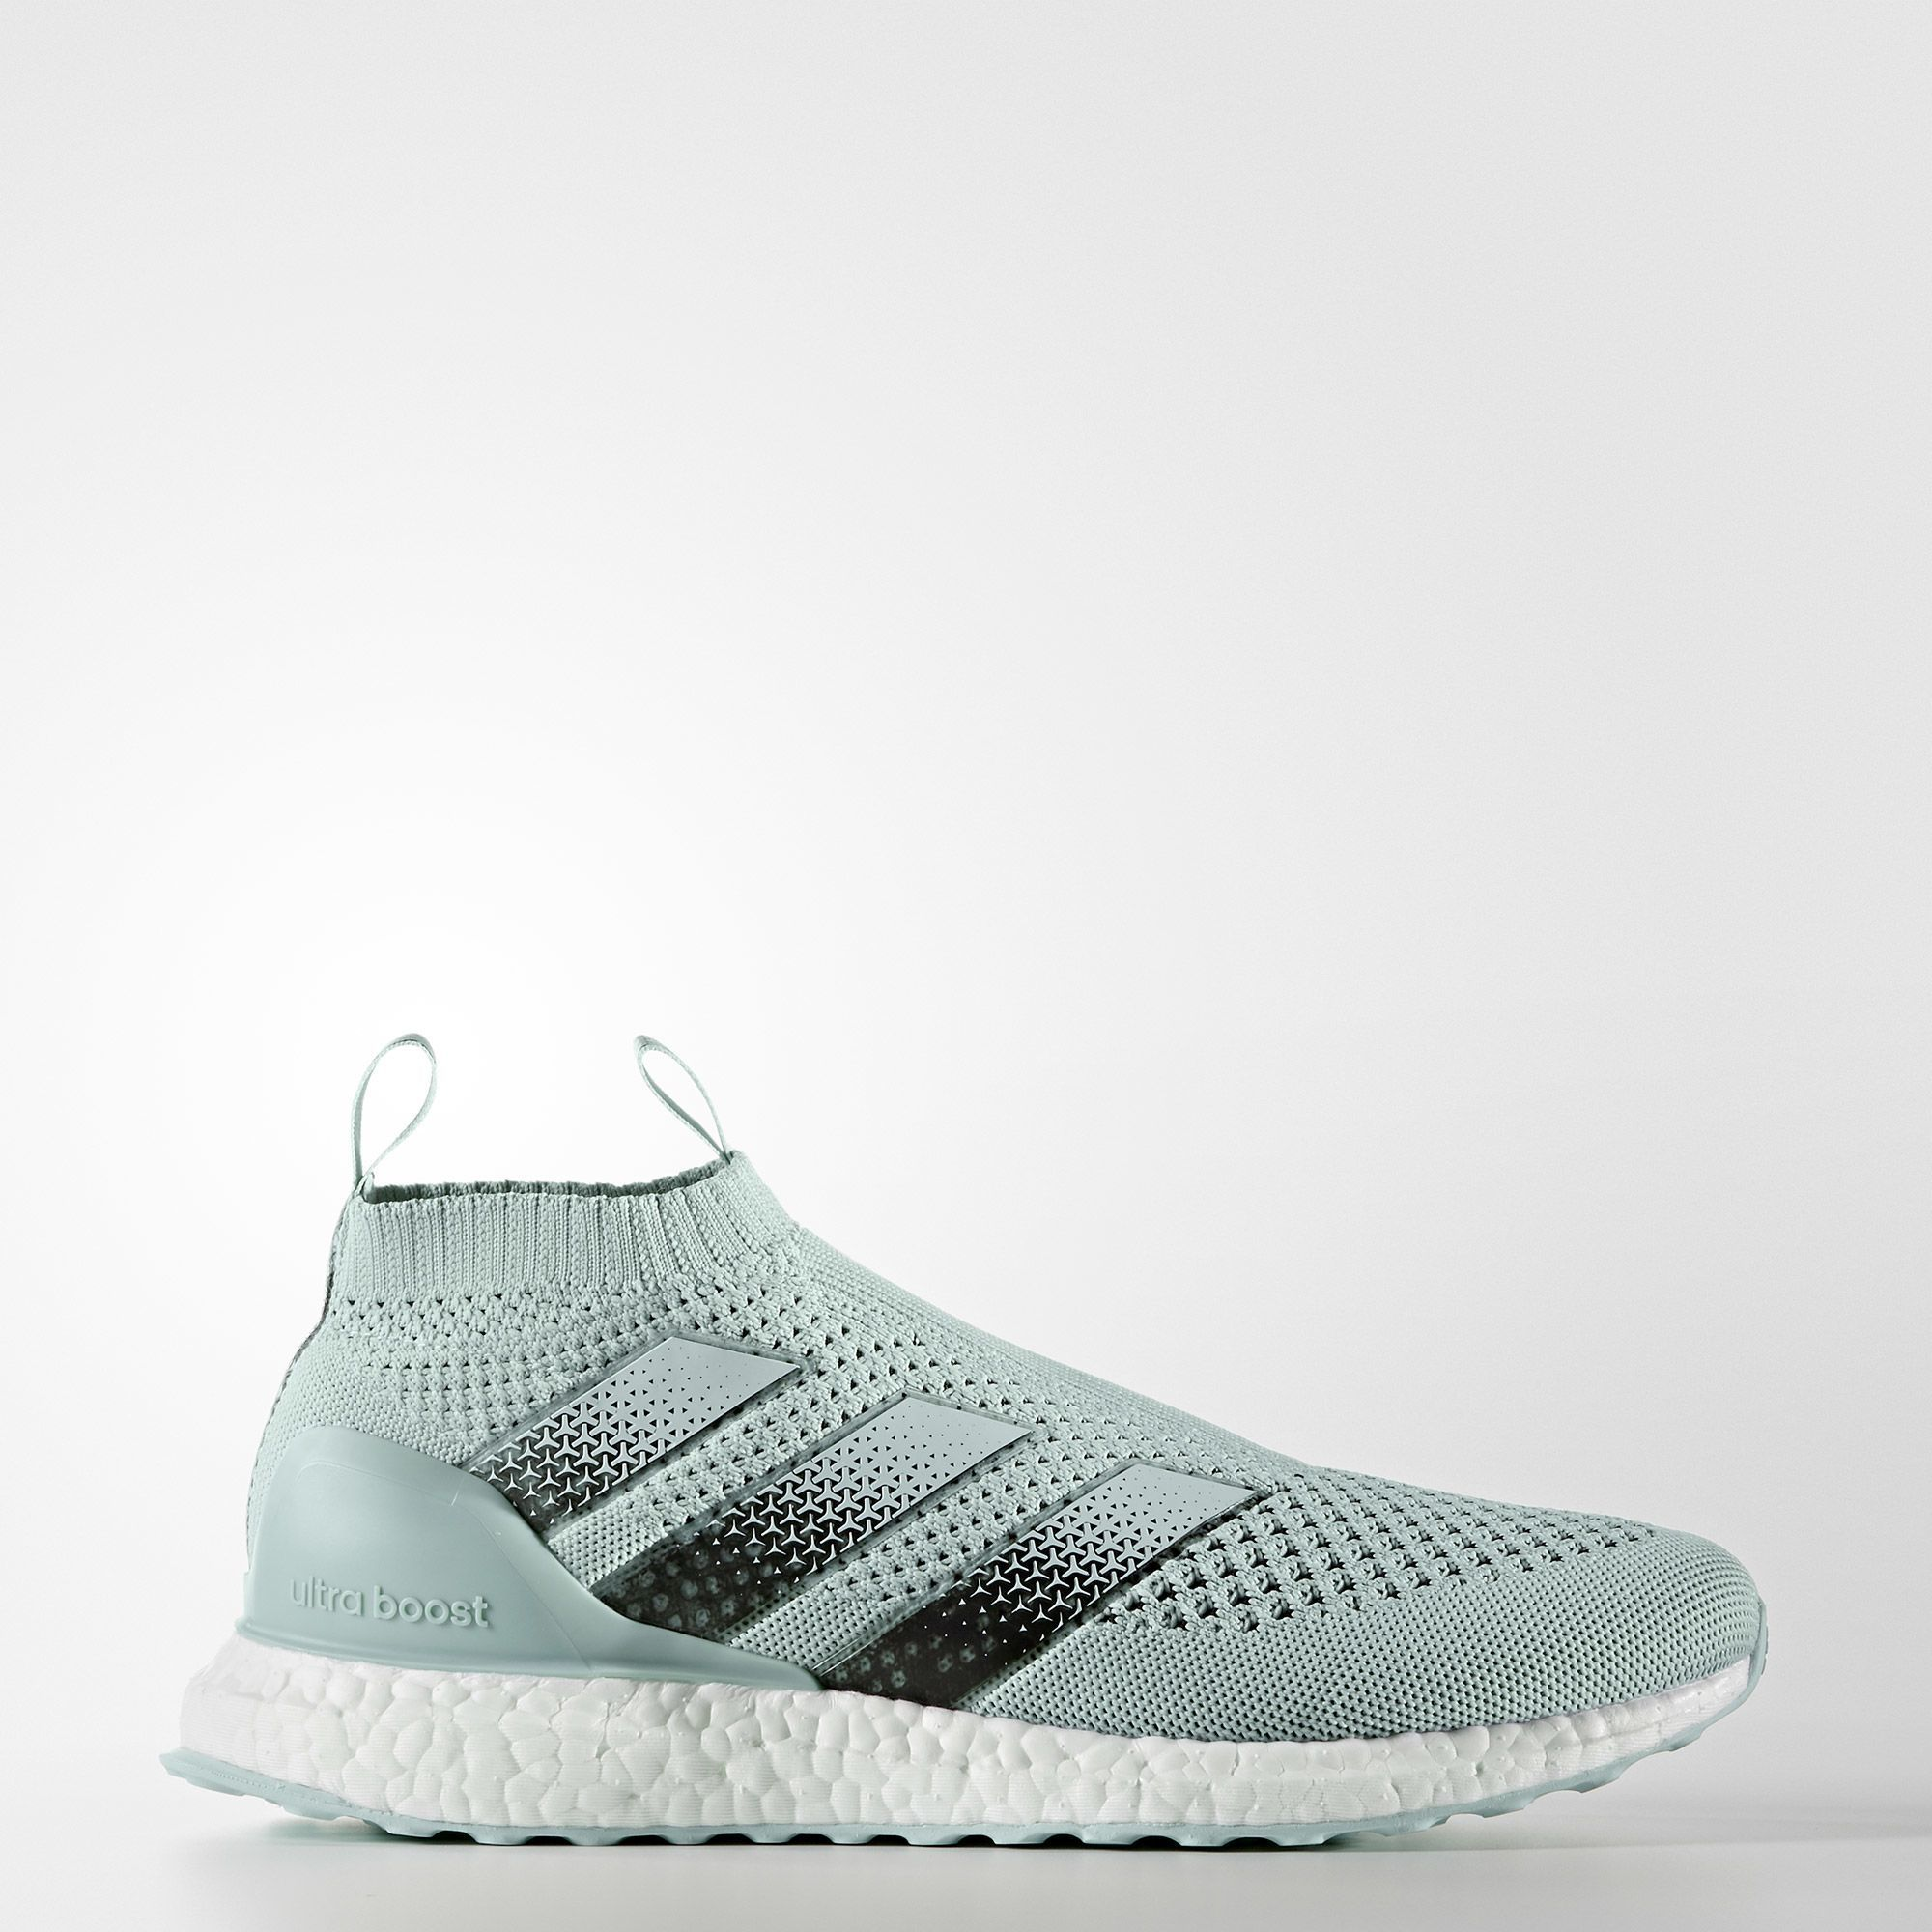 adidas ACE 16+ Purecontrol Ultra Boost – all white